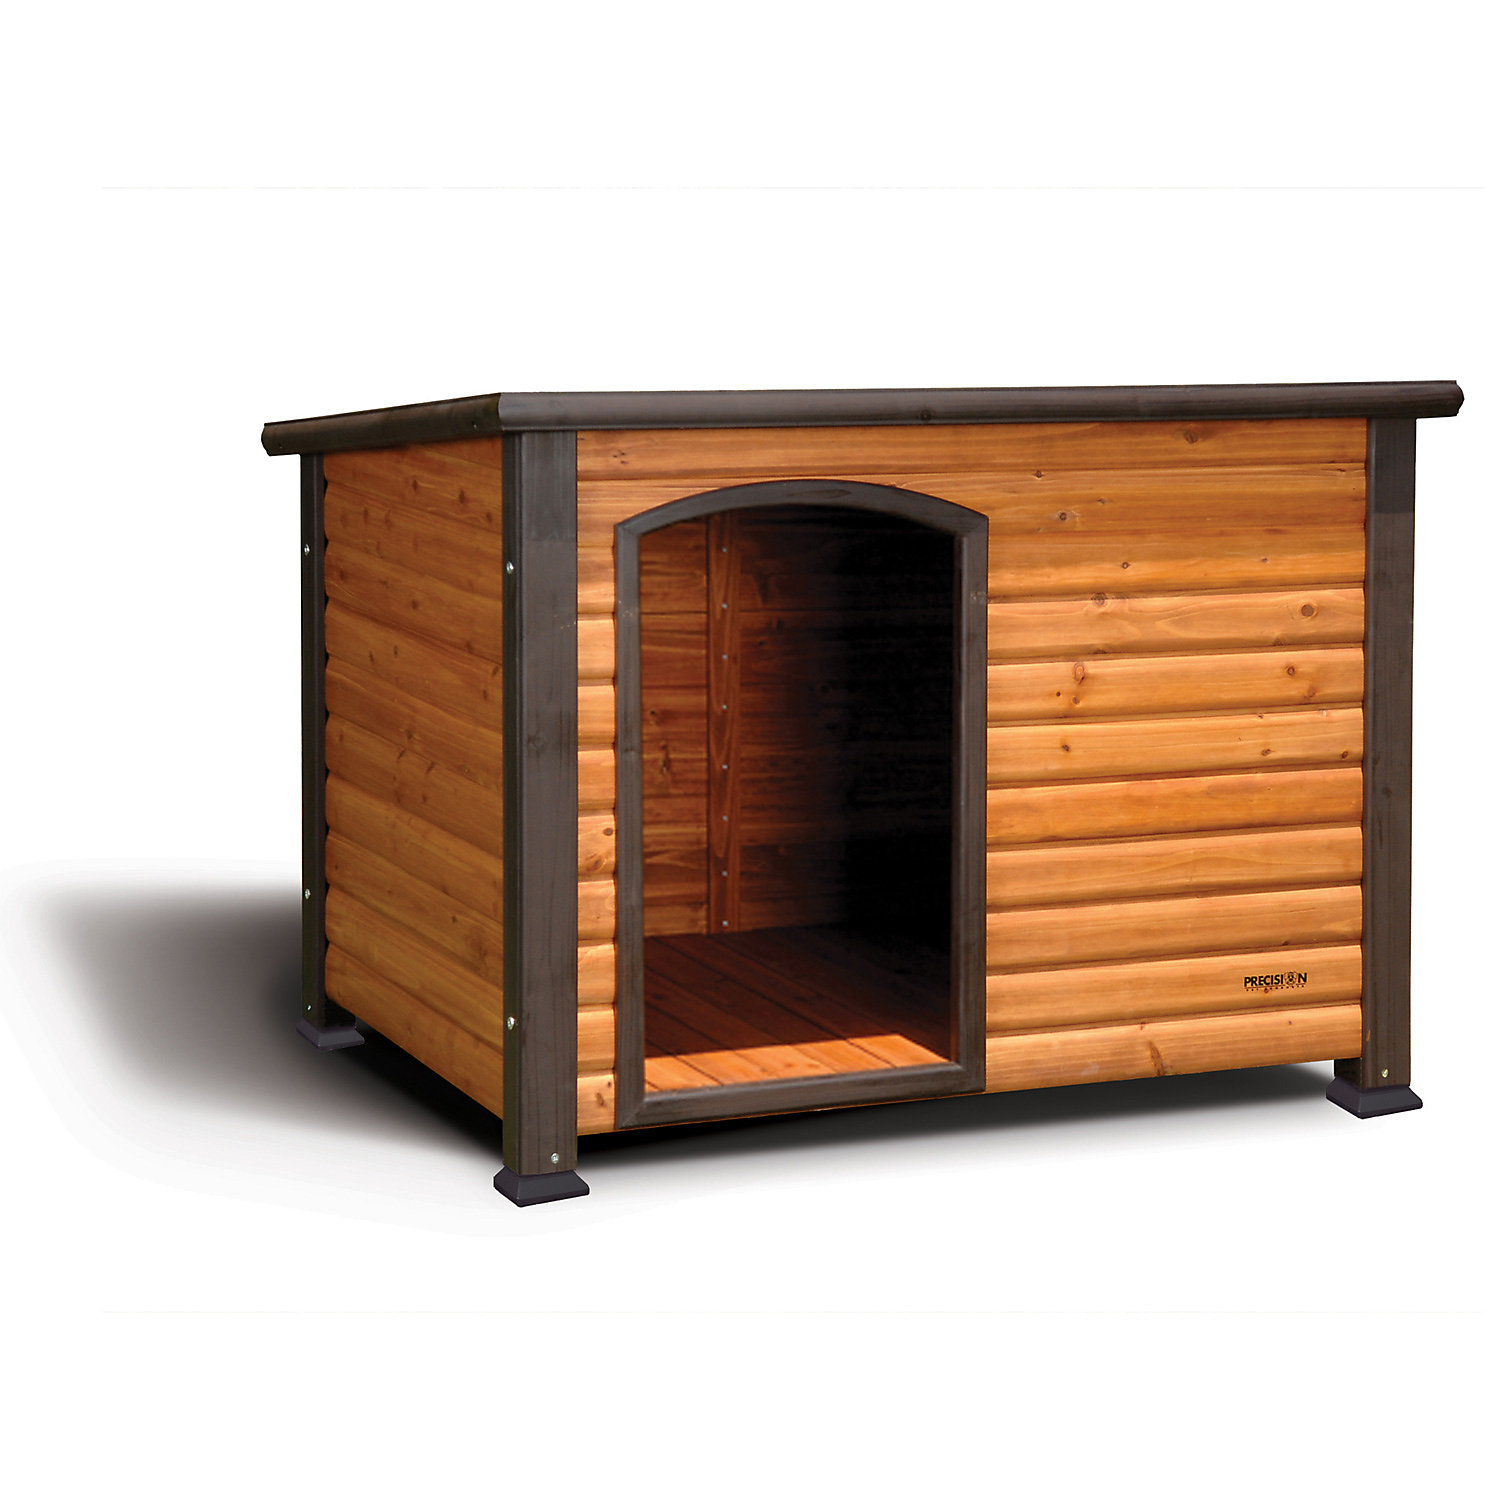 Precision Pet Extreme Outback Log Cabin Dog House Small Black